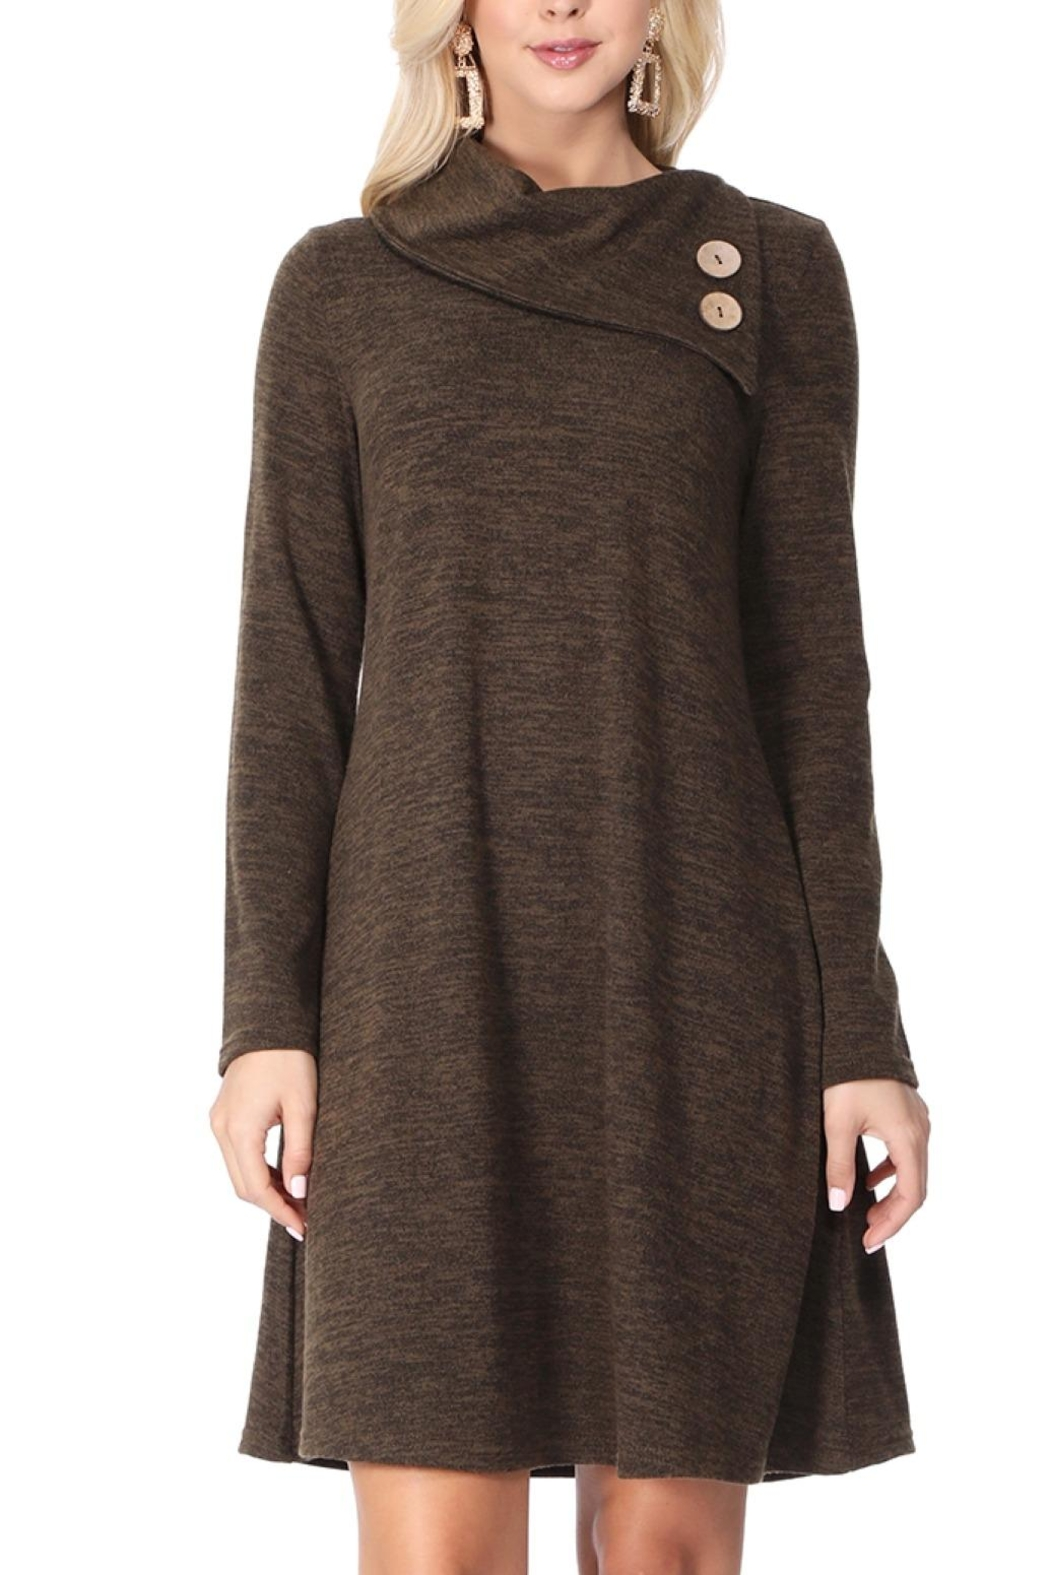 Aryeh Dark Olive Cowl Neck Knit Dress - Side Cropped Image